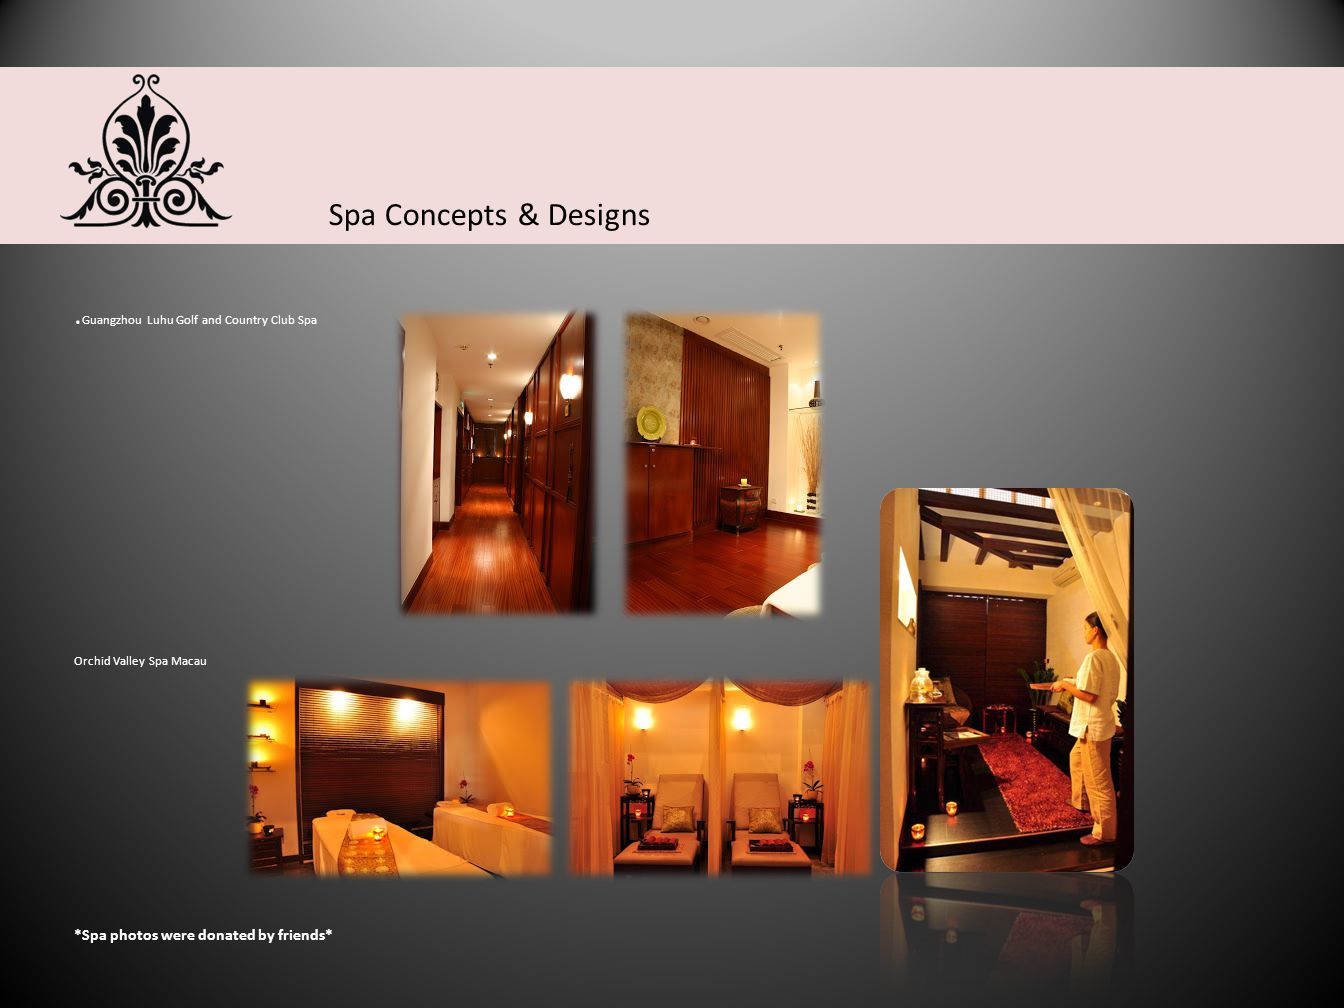 Spa Concepts & Designs *Spa photos were donated by friends*.